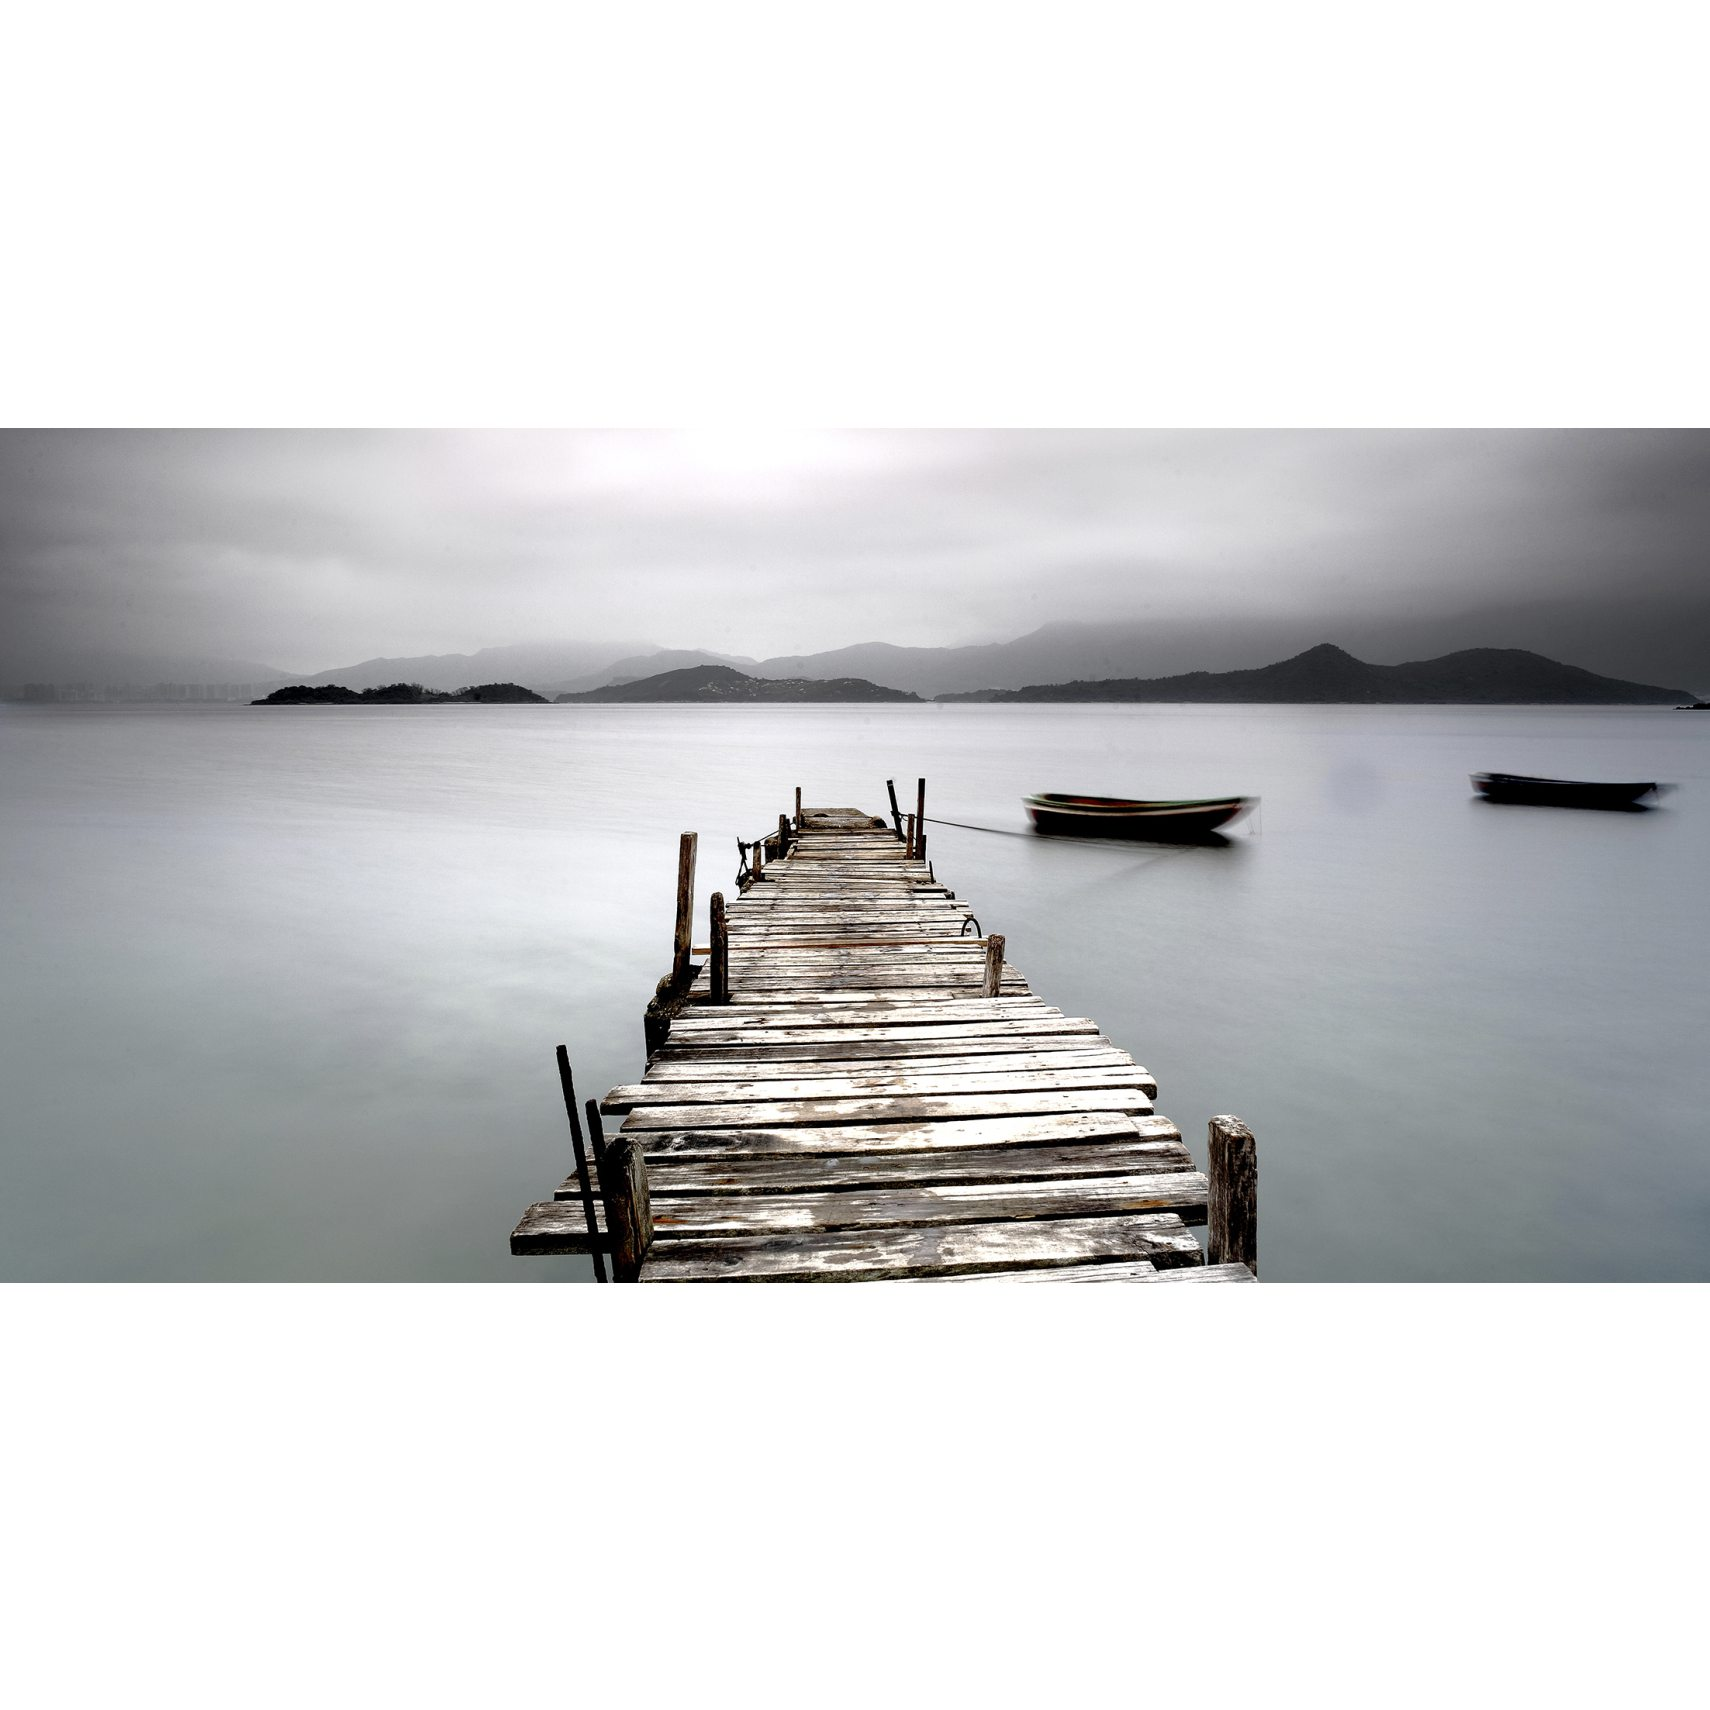 PhotoInc Fotoprint - Lake Pier og blind ramme